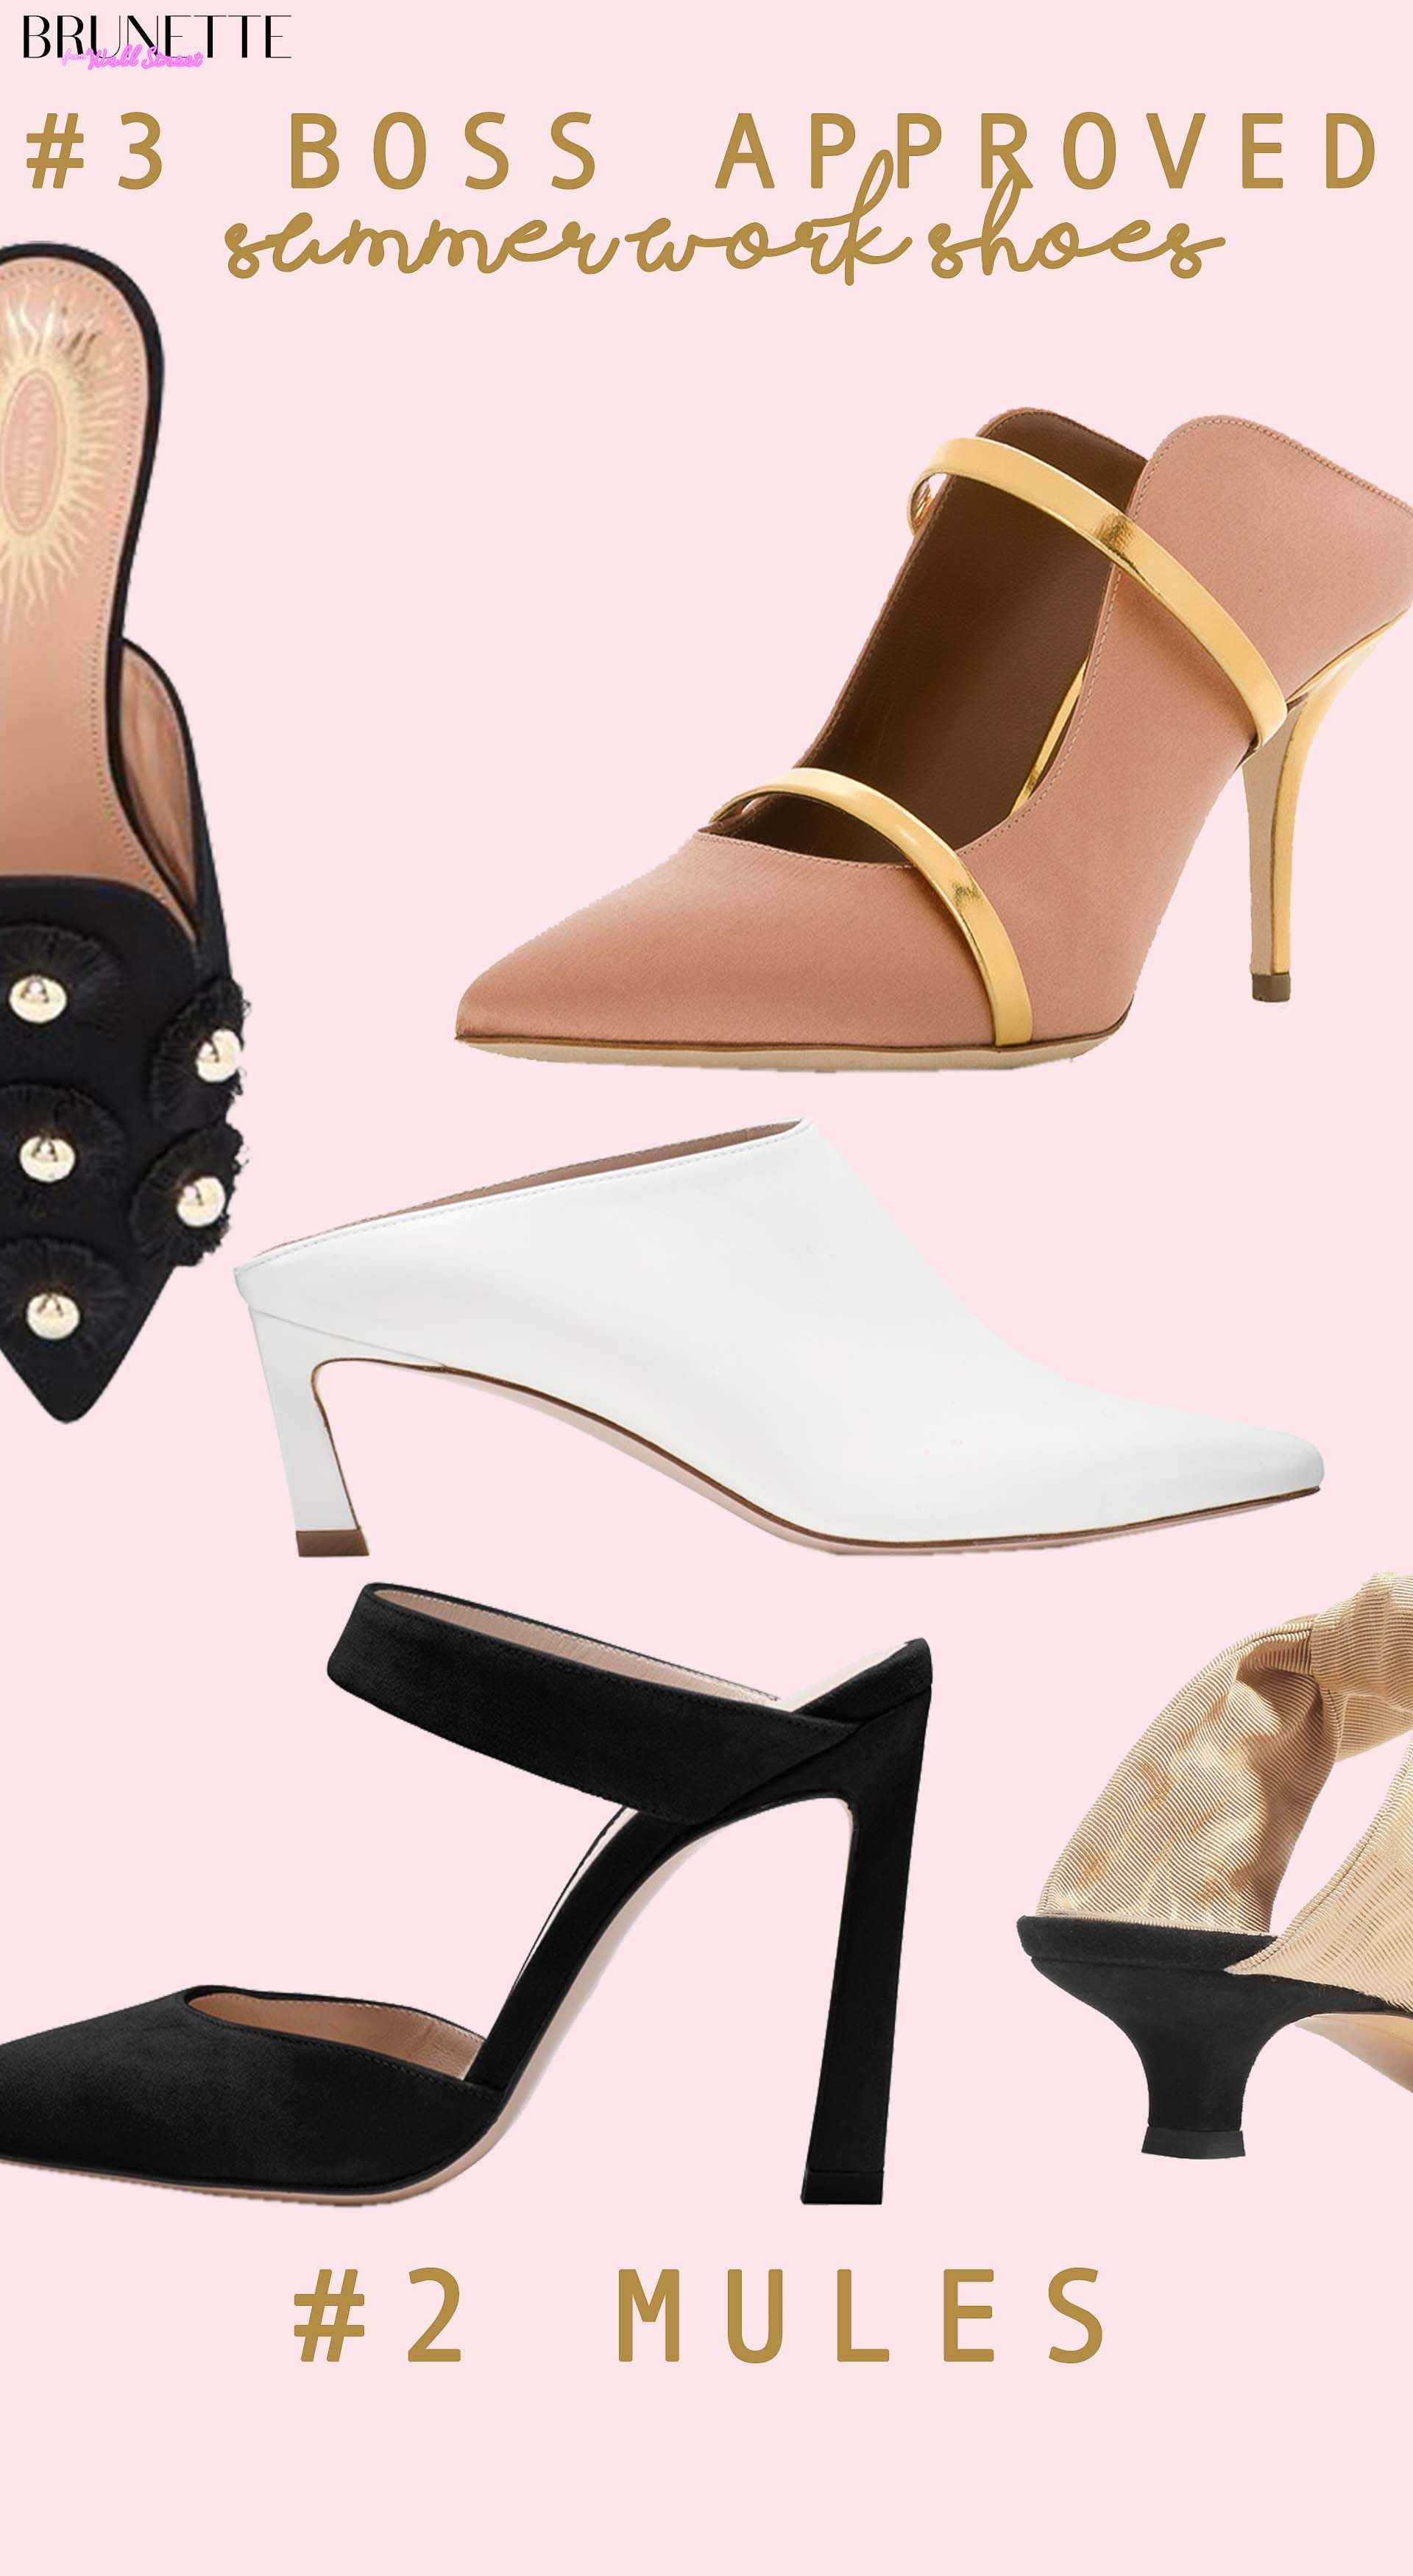 2020 Summer Work Shoes | Brunette from